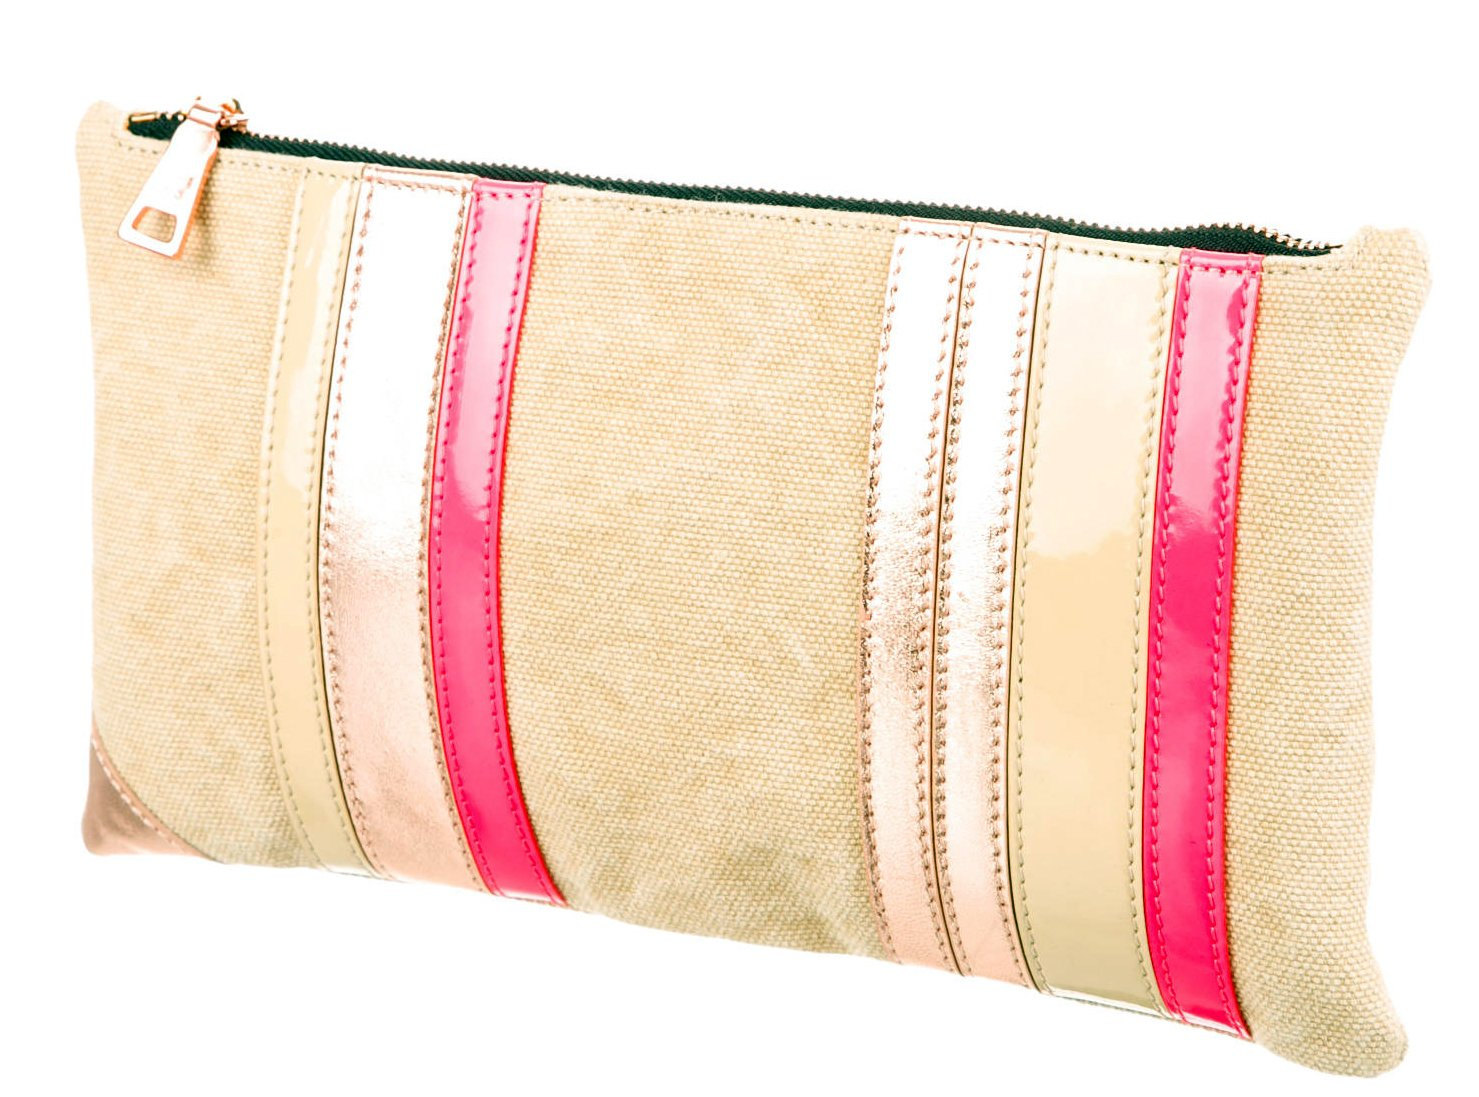 Ruthie Davis 'Made with Love in Italy Simple Clutch' Rose Gold + Patent Pink